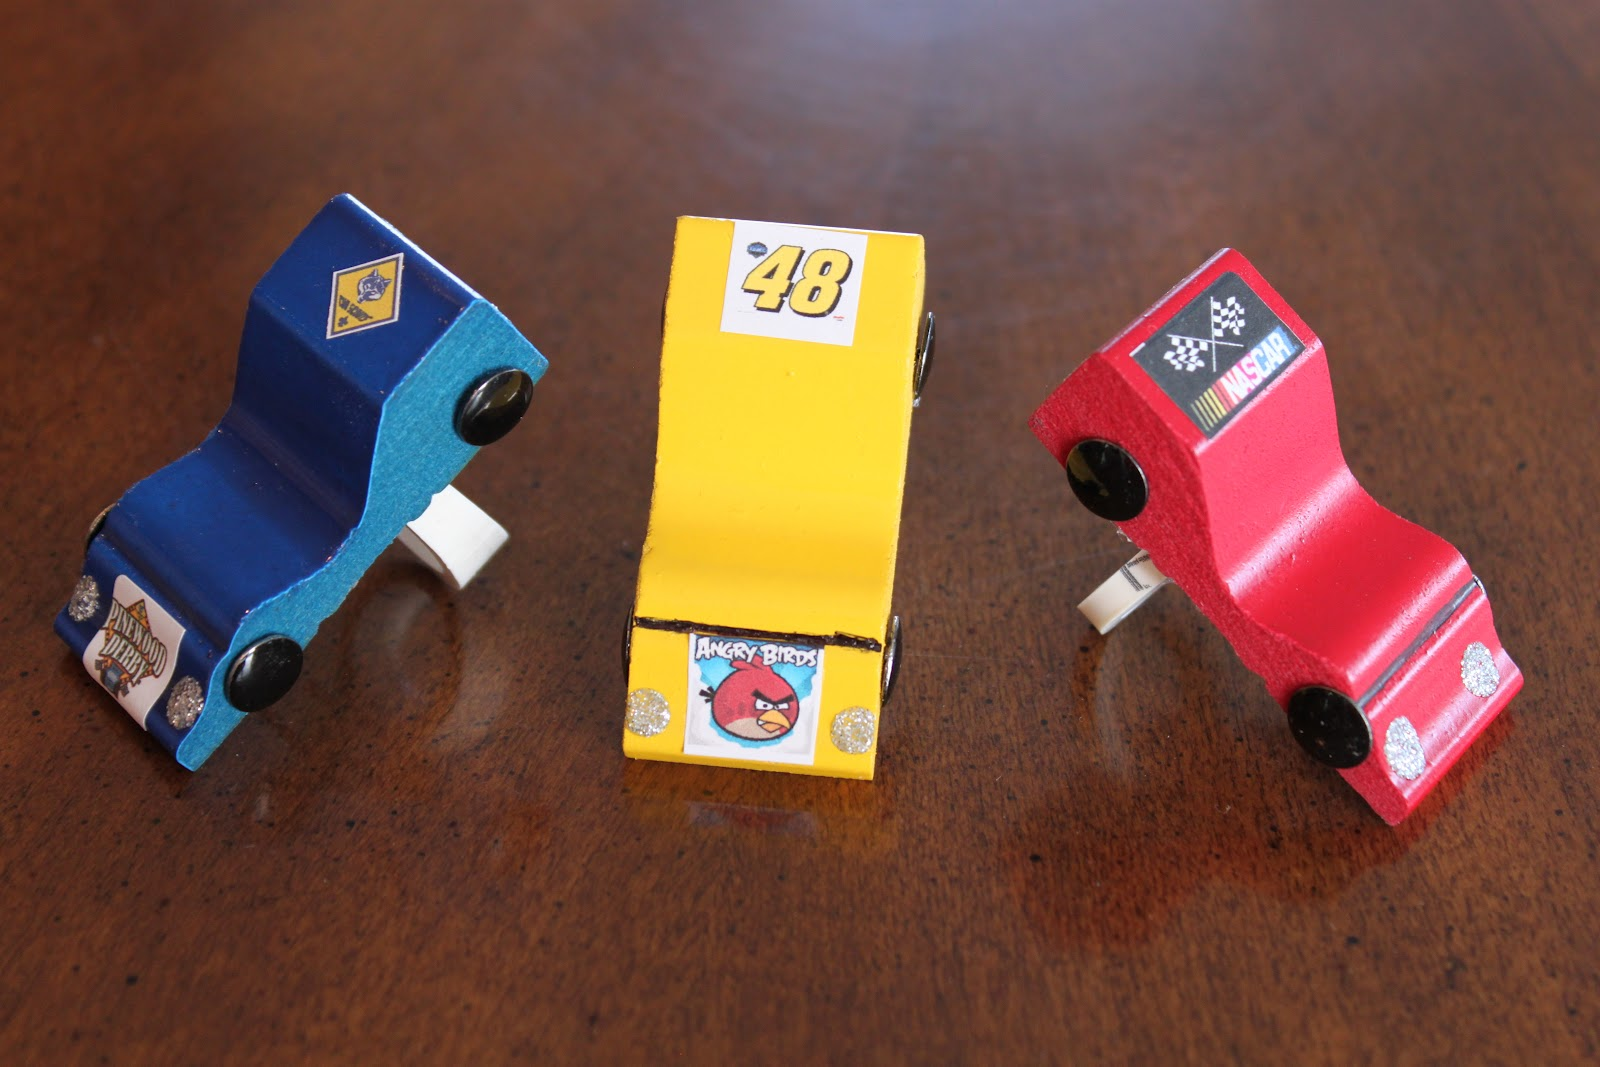 ... Cub Scouts: More Neckerchief Slide Ideas for the Pinewood Derby